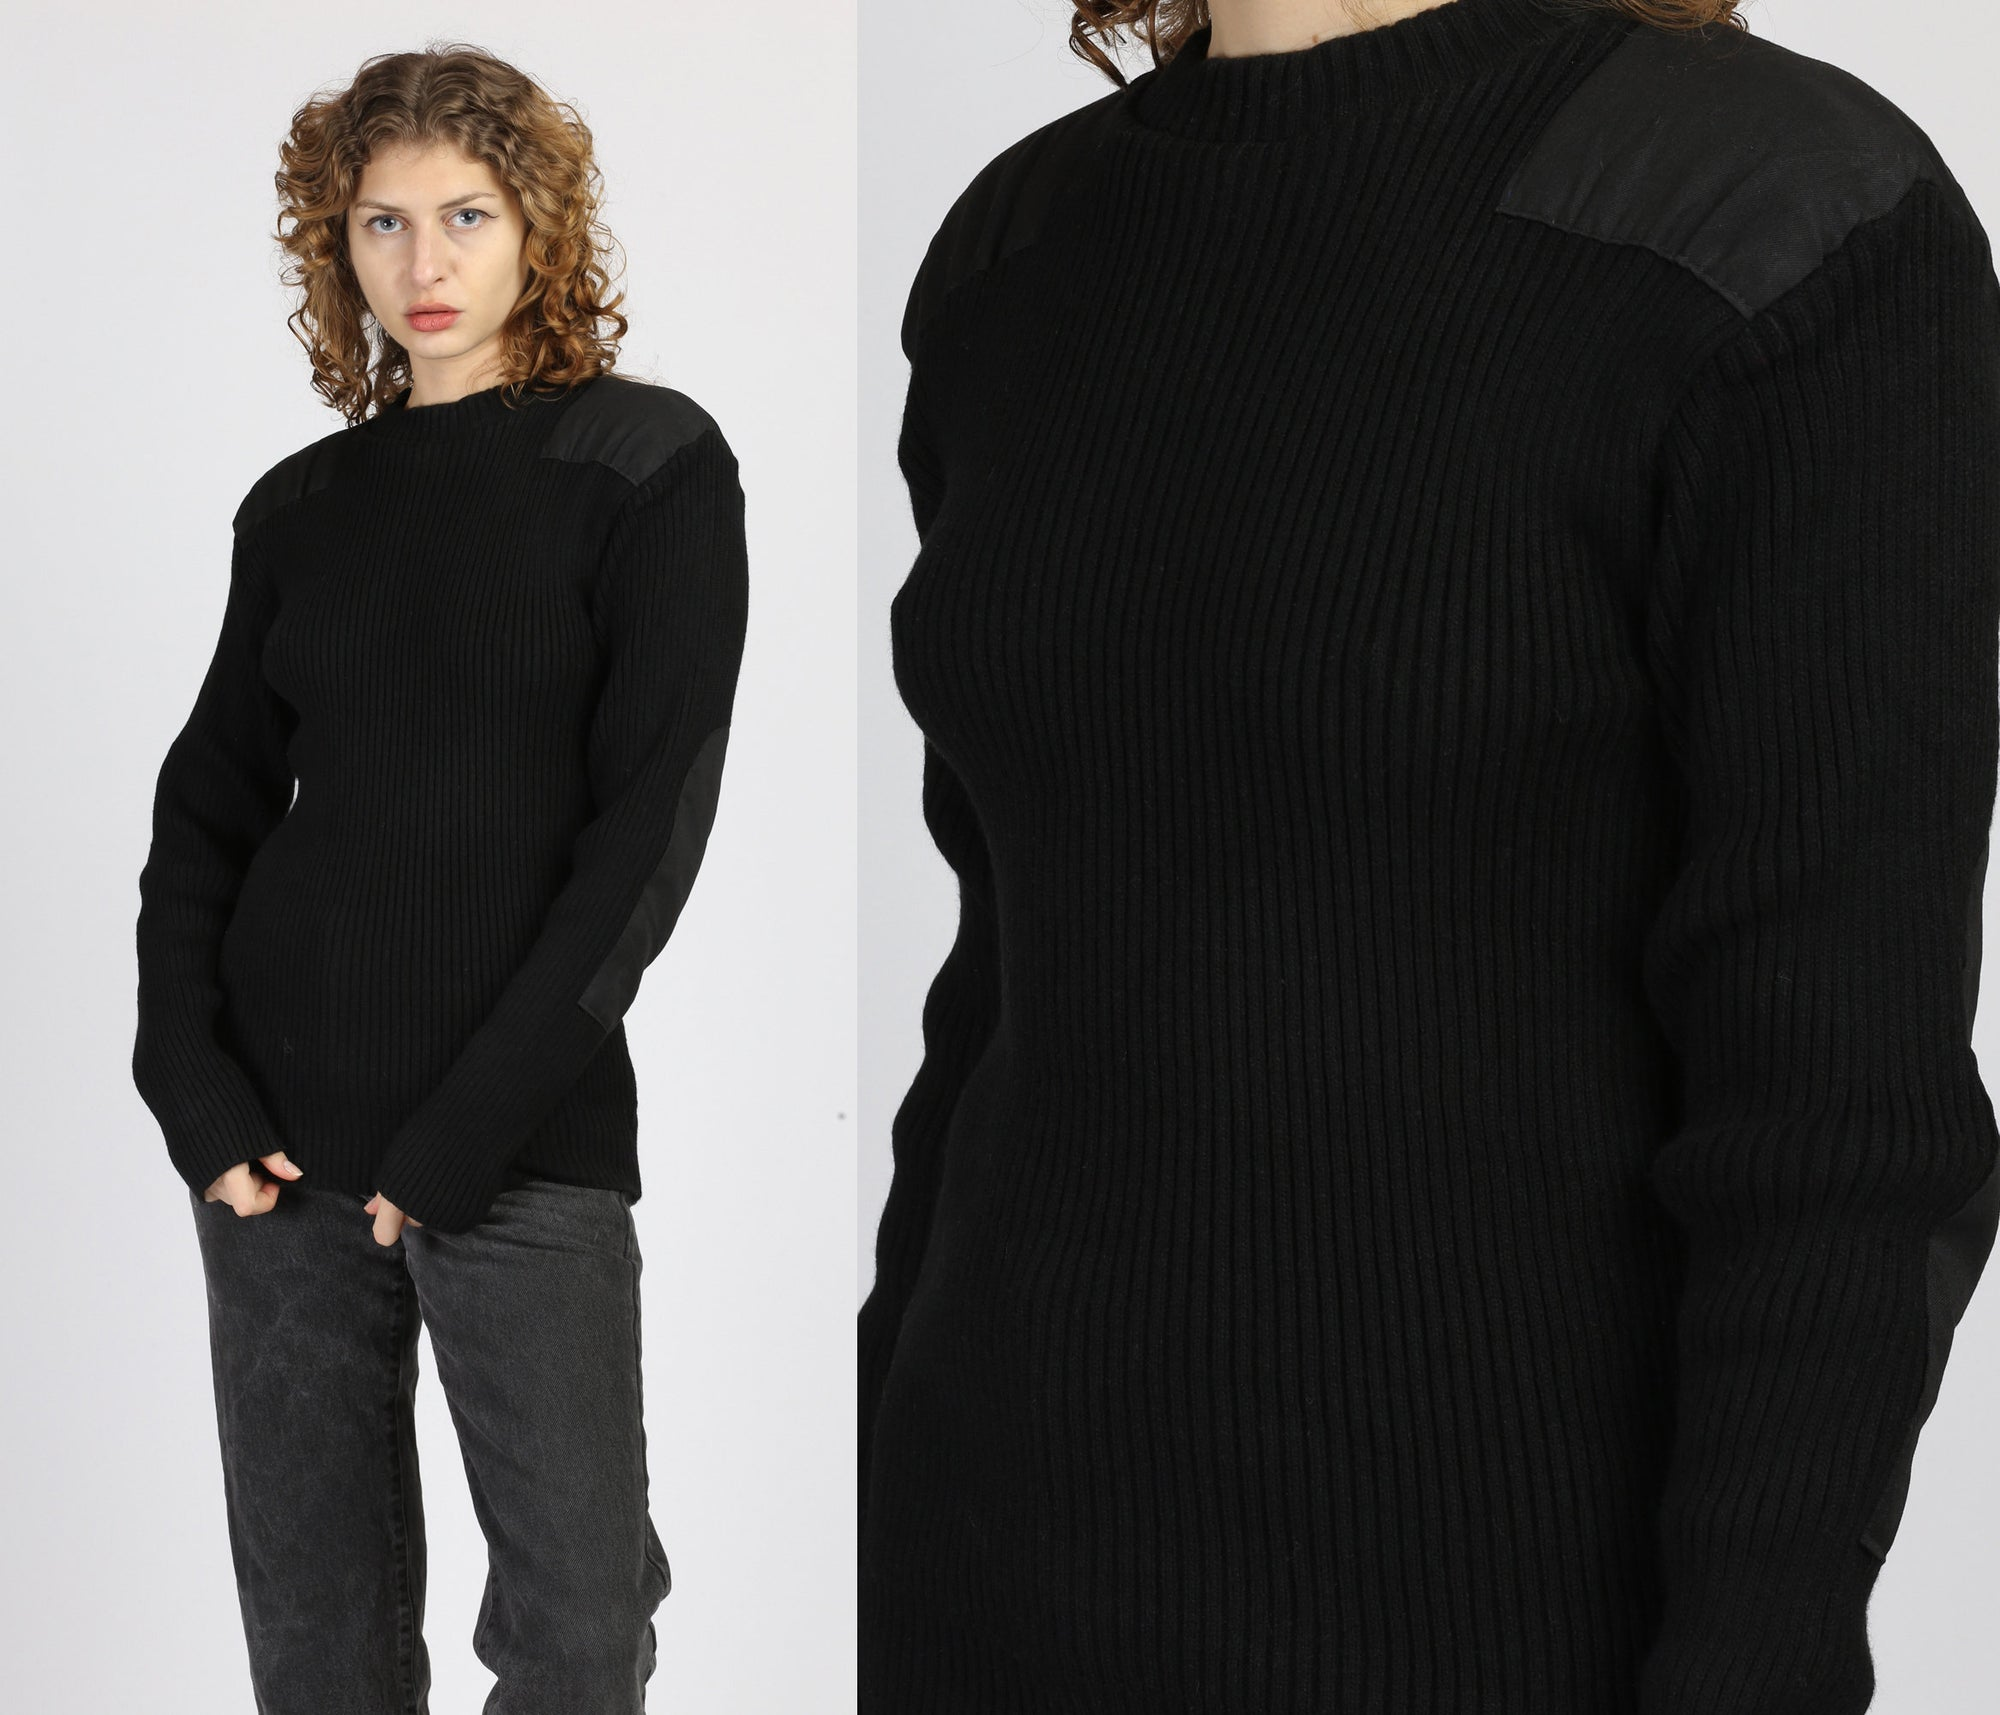 90s Black Commando Tactical Sweater - Small